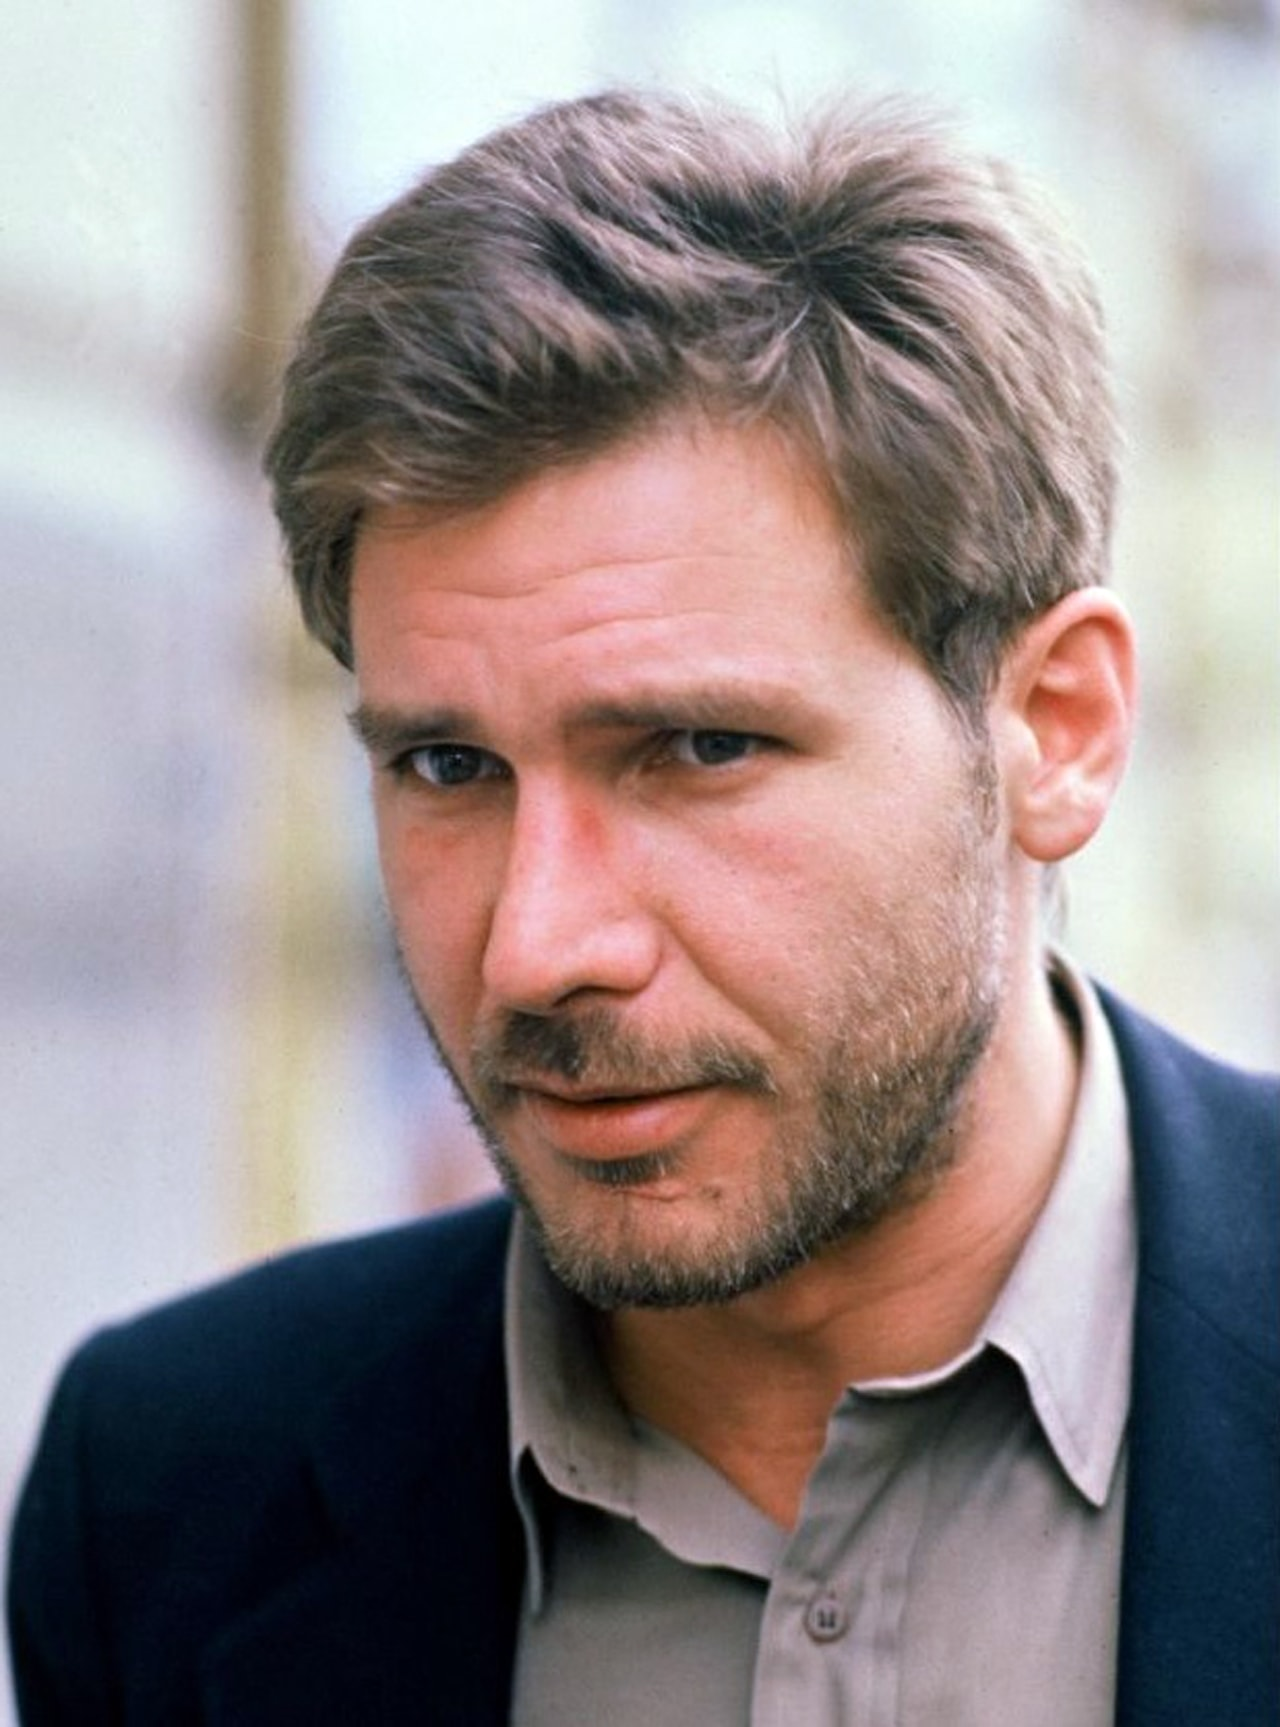 Harrison Ford For mobile